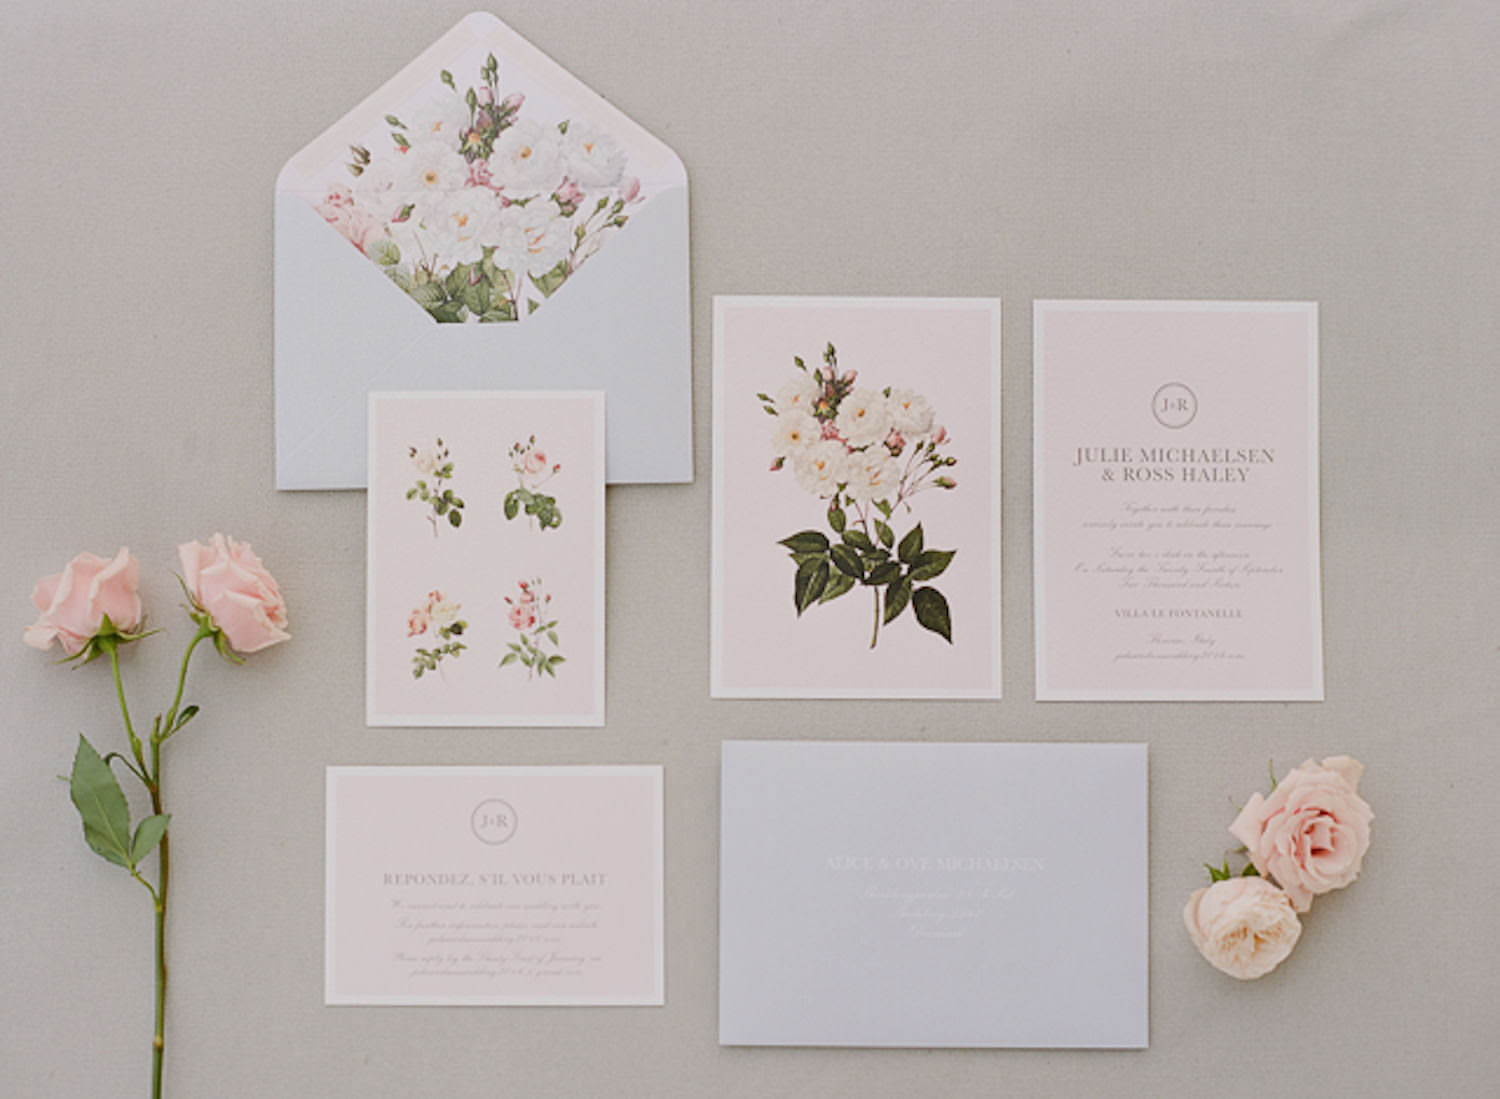 Fine art wedding planning designs, soft and romantic wedding stationery